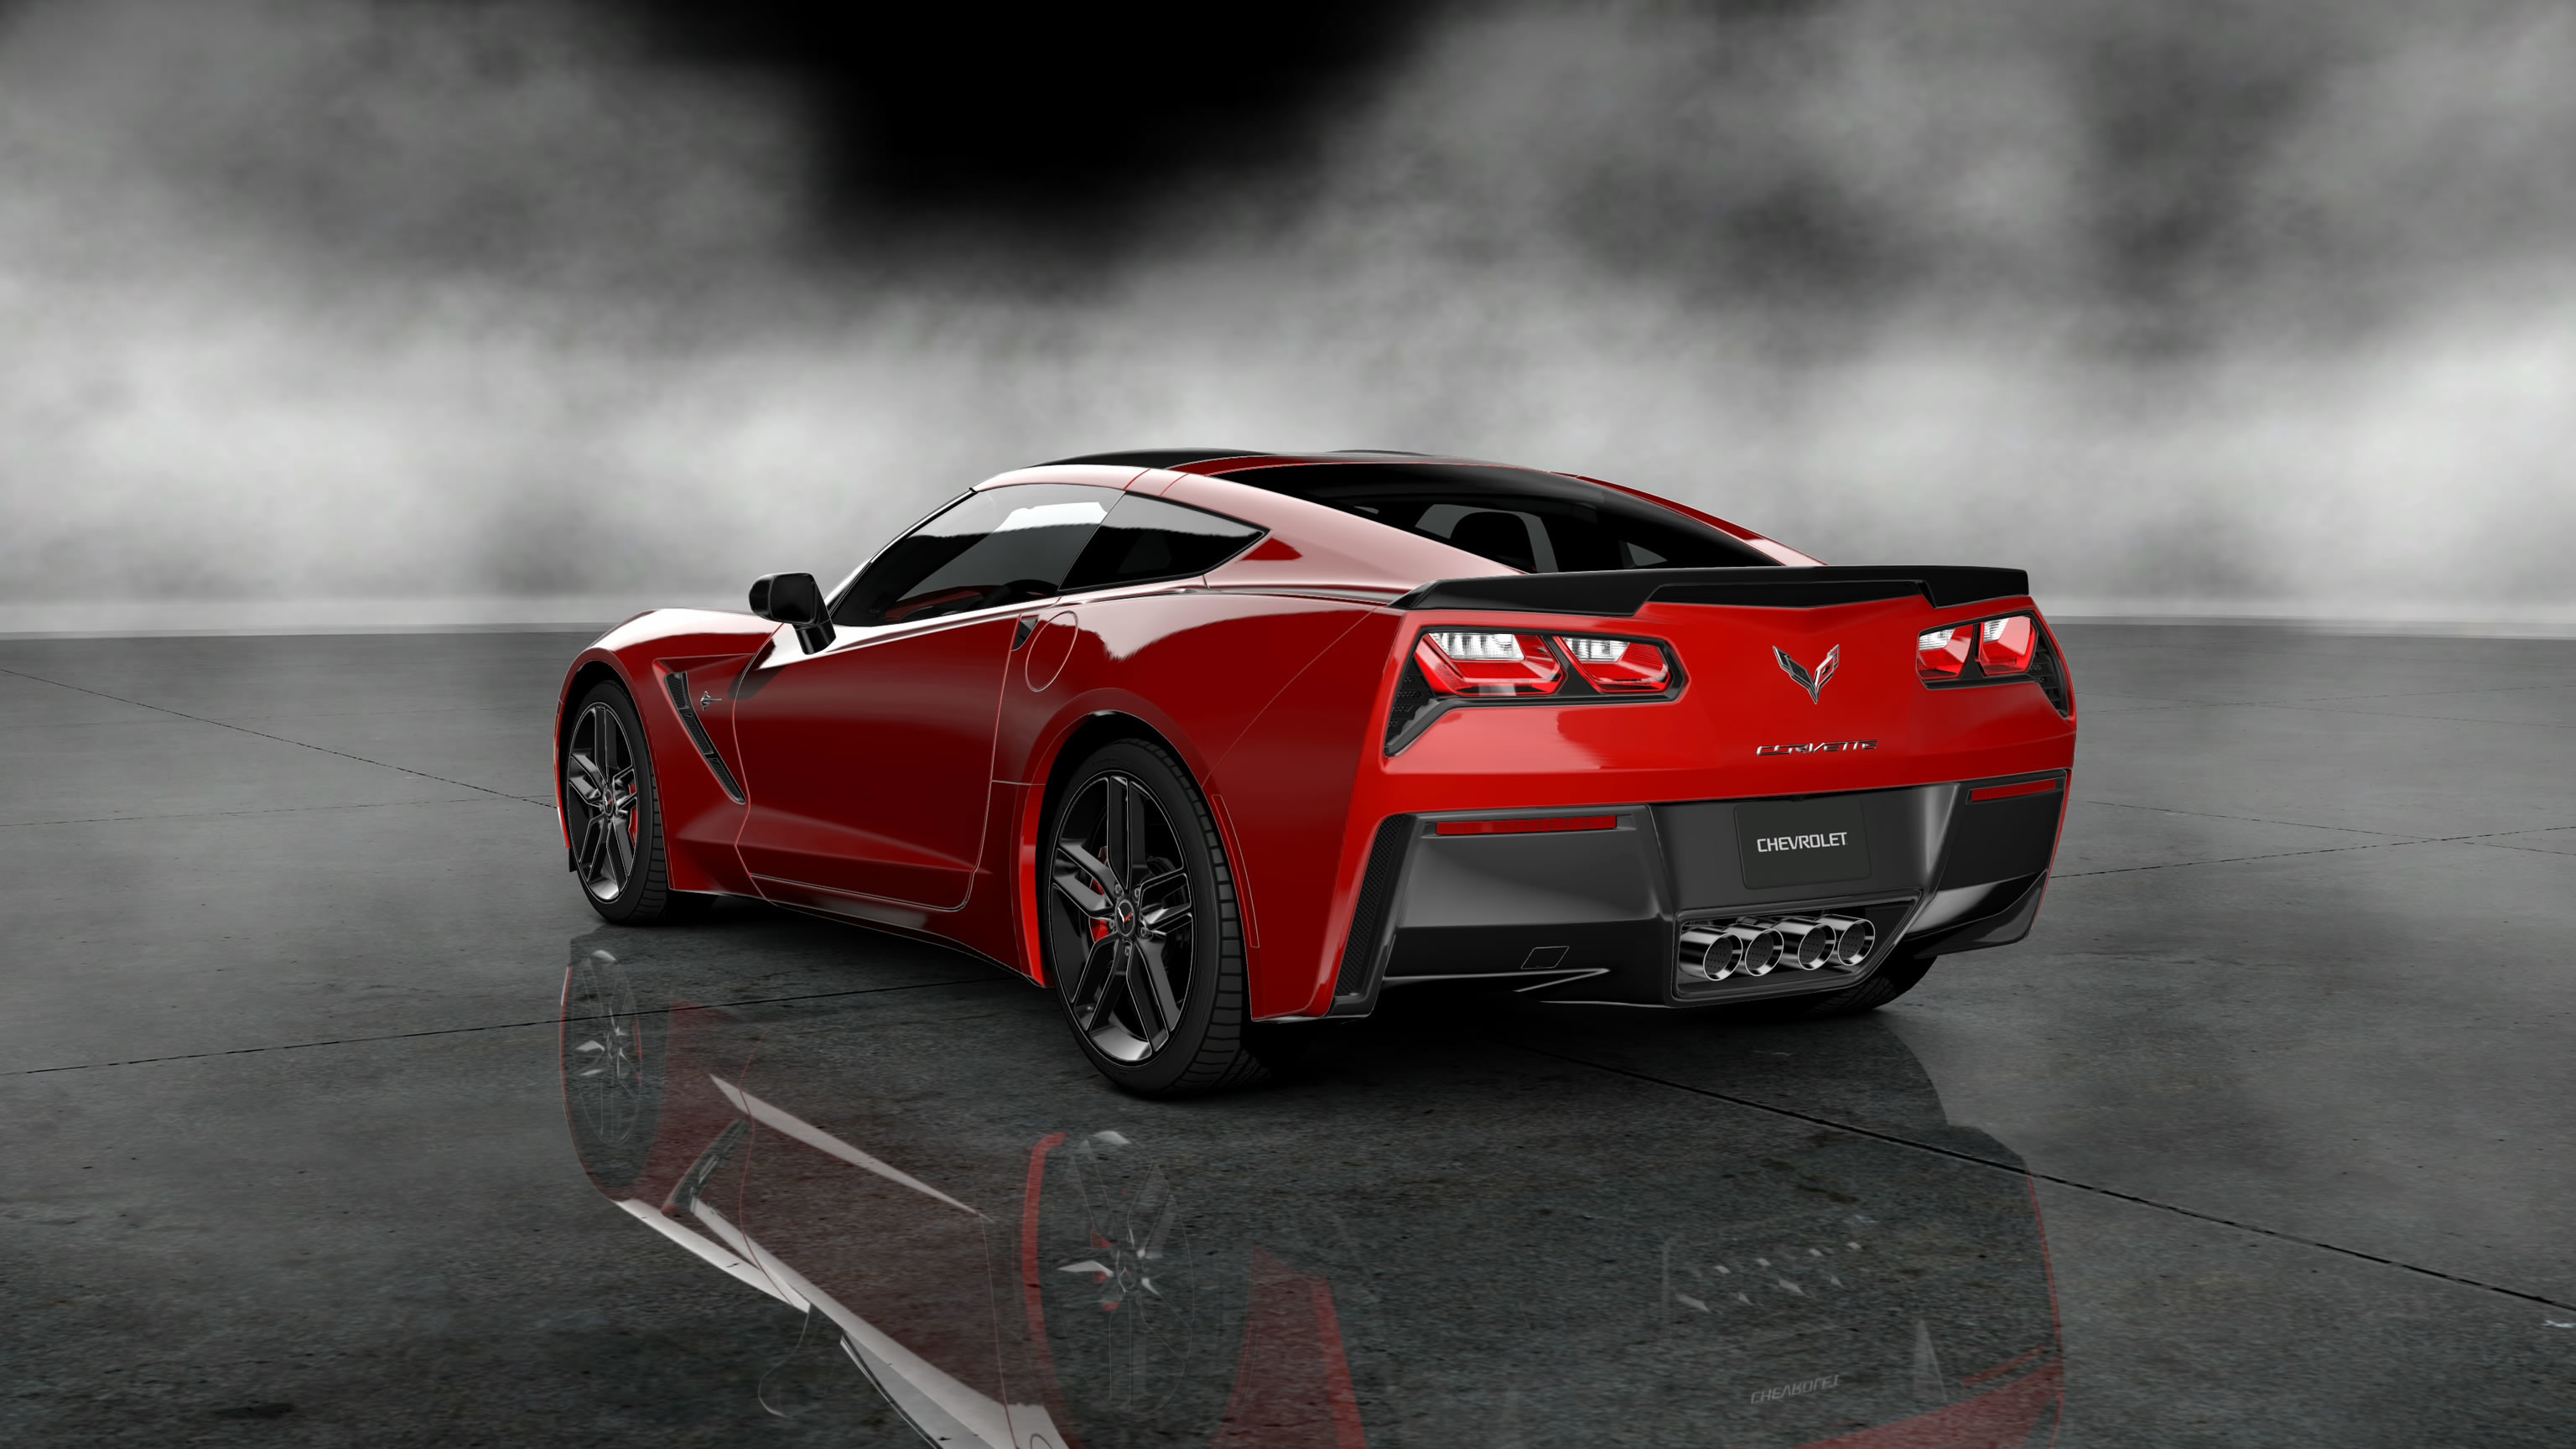 3072x1728 ... Corvette C7 Z06 Wallpaper - WallpaperSafari ...